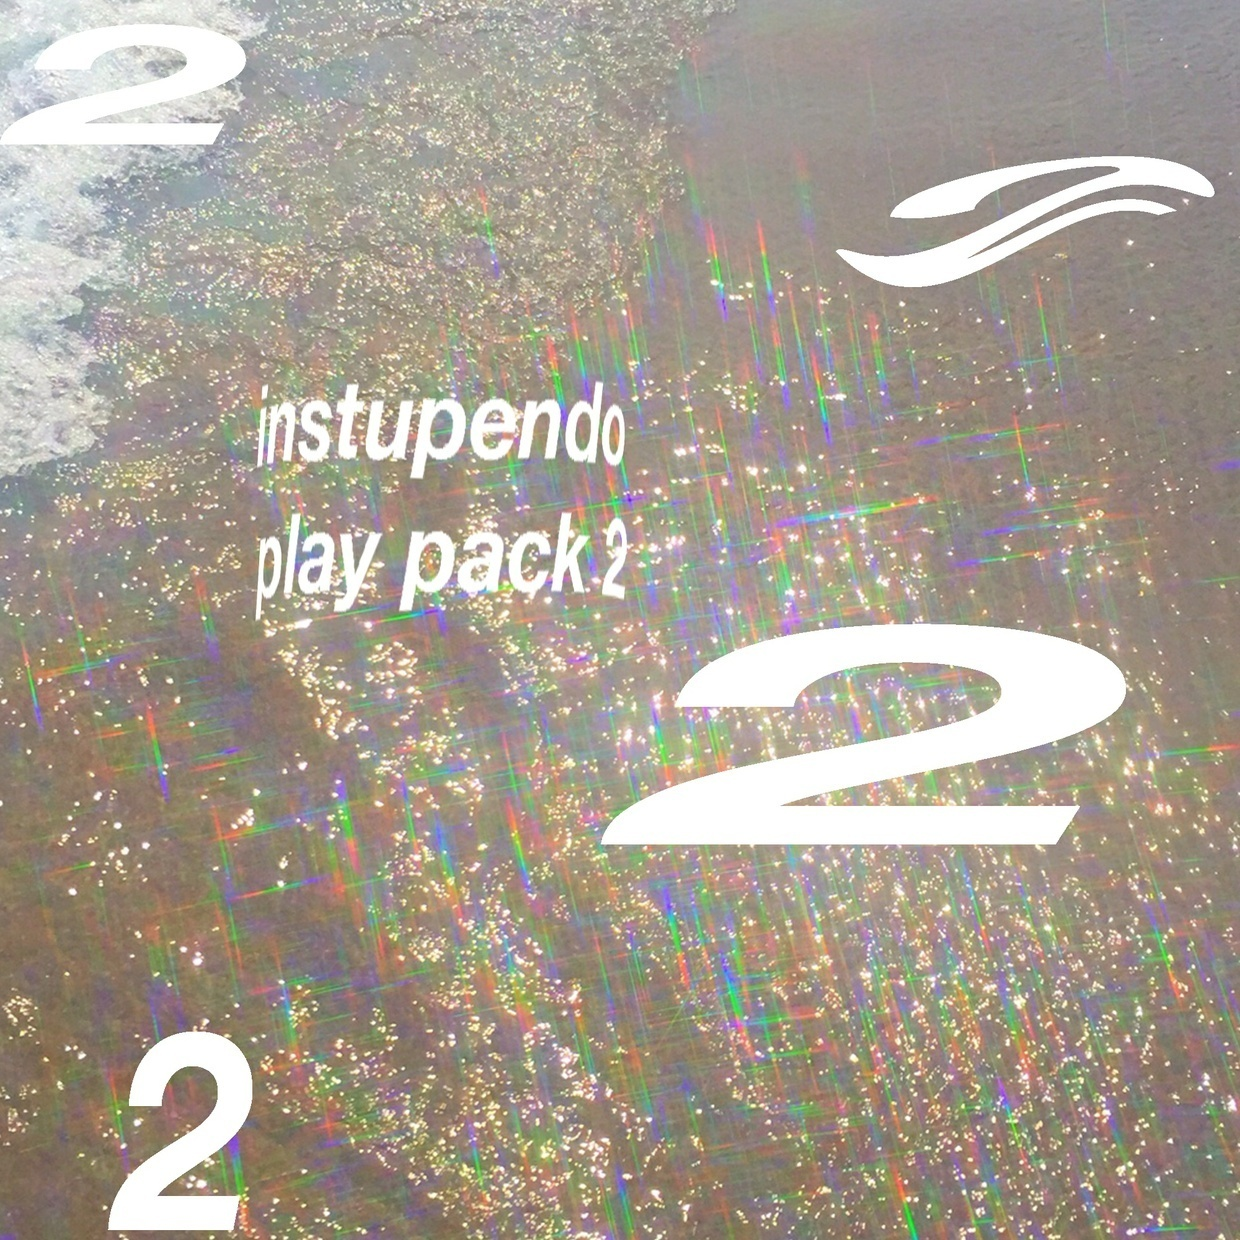 instupendo play pack 2